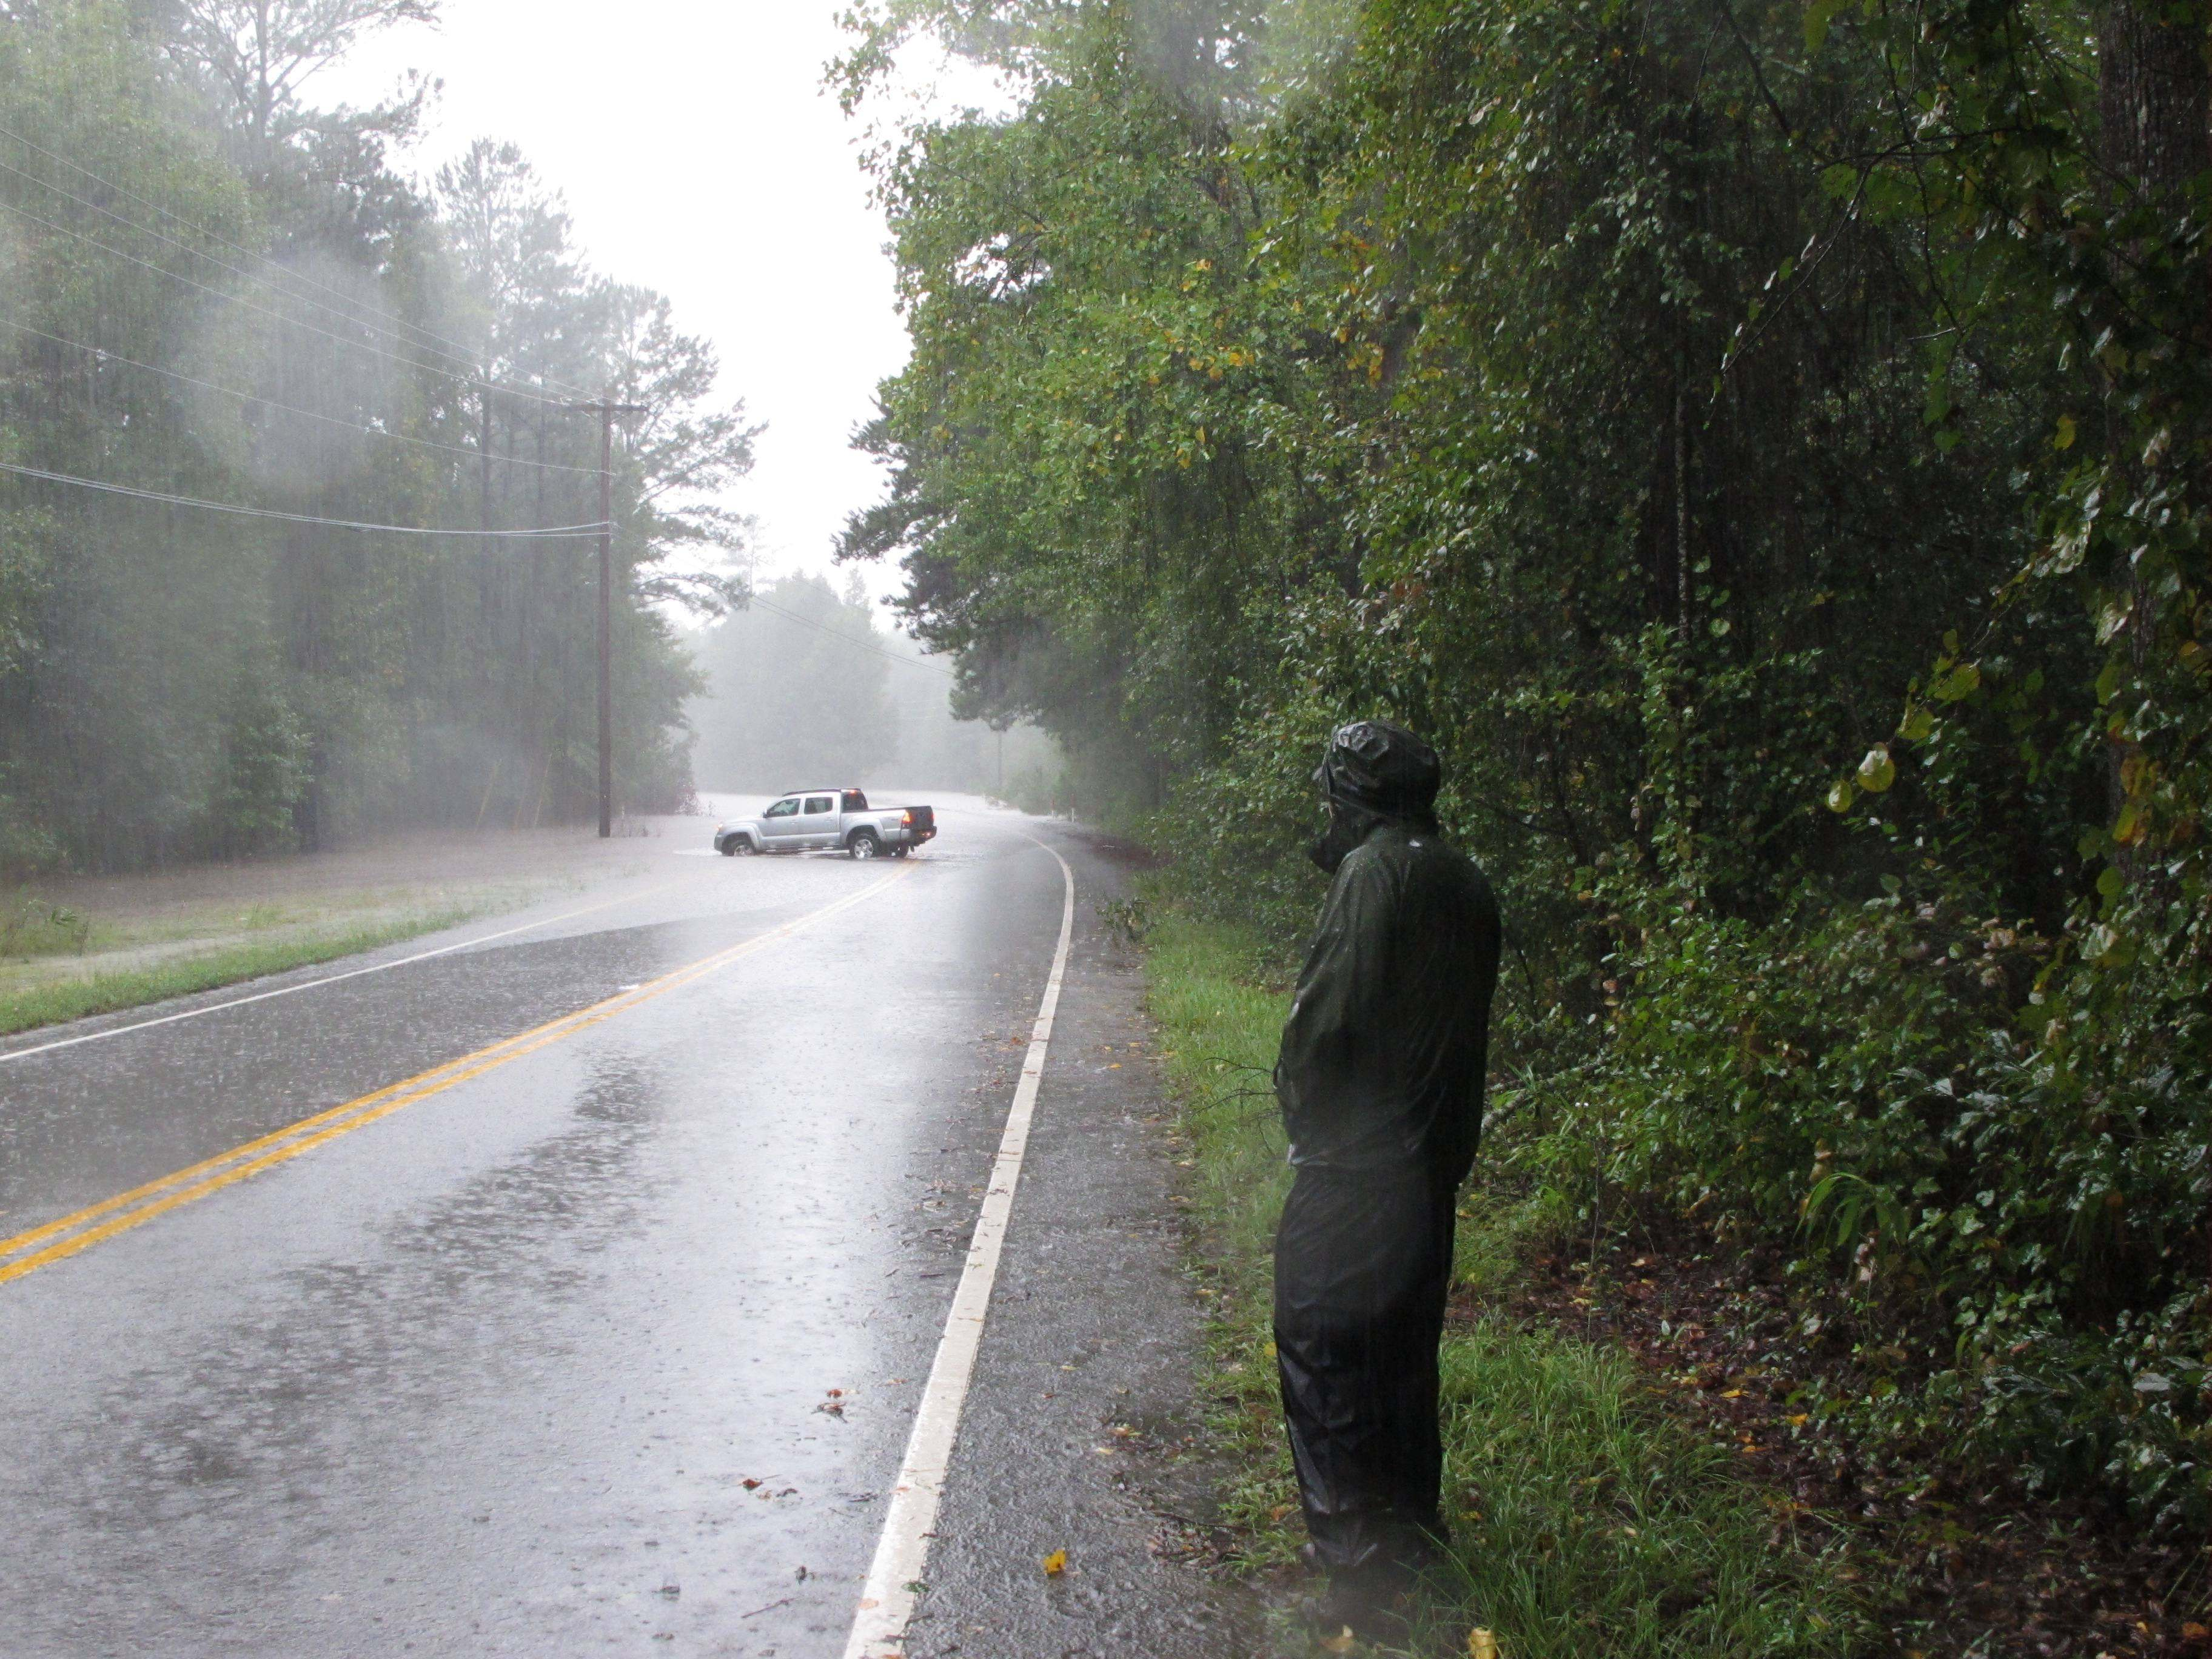 Fred Grooms watches as a car turns around in flood waters on Hardscrabble Road on Sunday, Oct. 4, 2015, in Columbia, S.C.